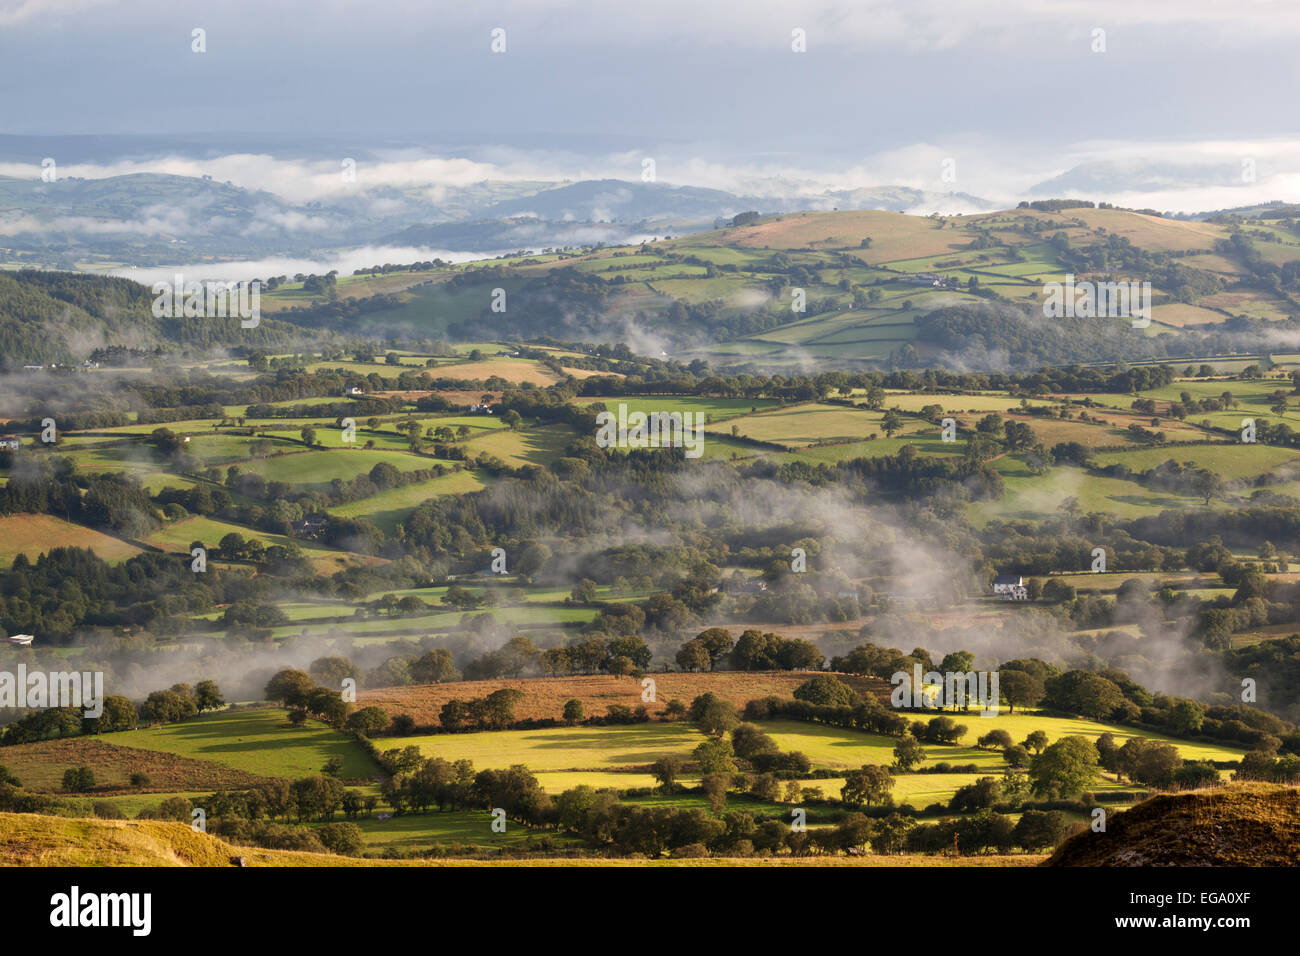 View over misty farmland from Black Mountain, near Capel Gwynfe, Brecon Beacons National Park, Carmarthenshire, - Stock Image